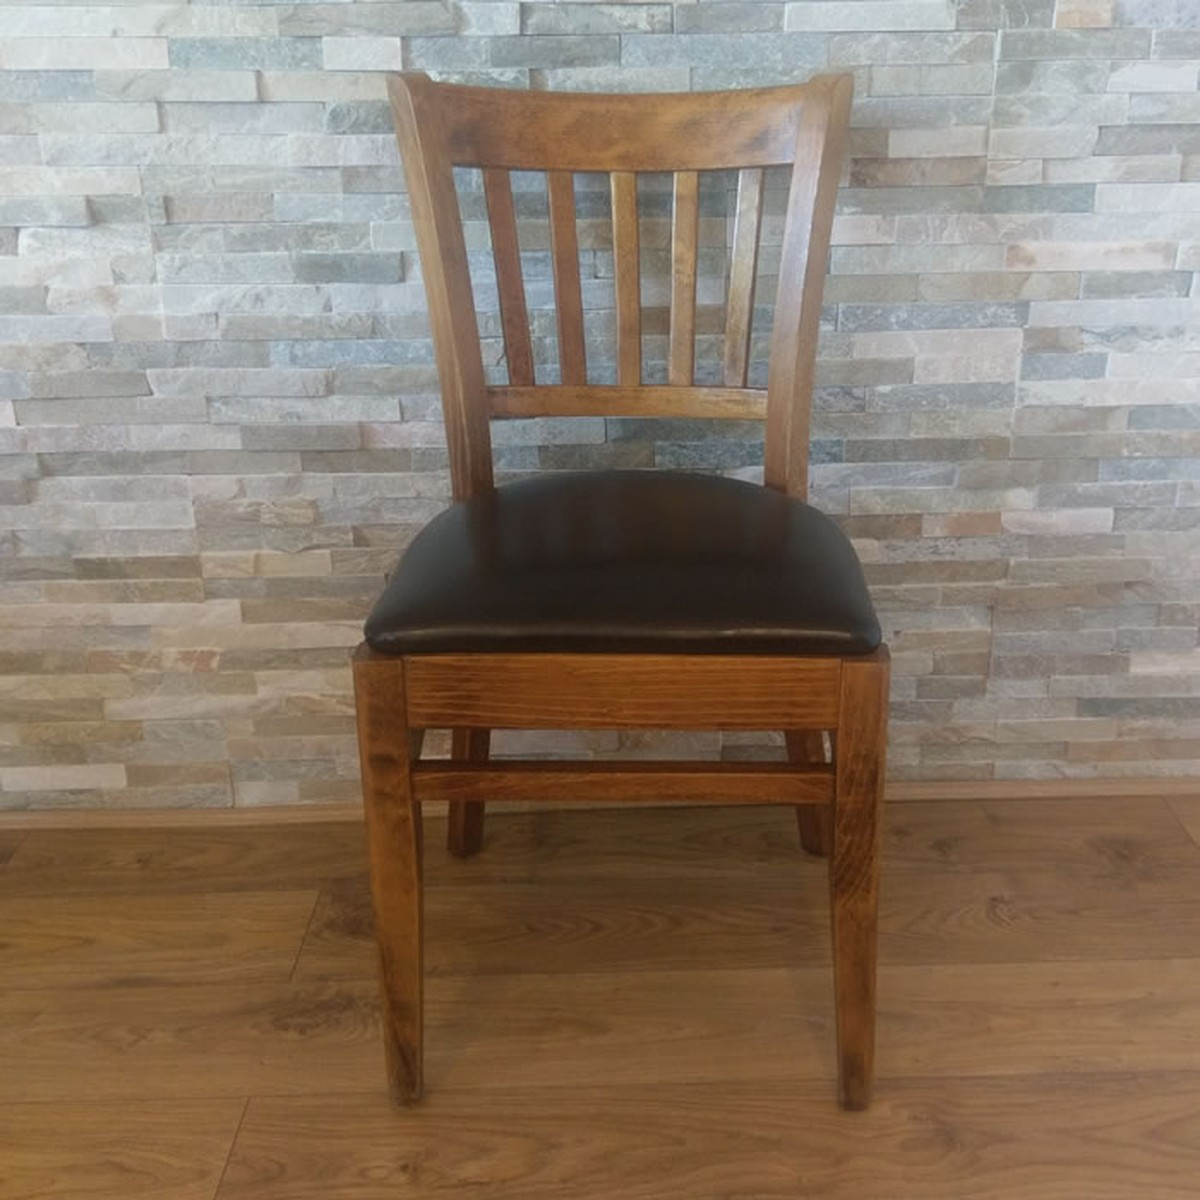 Restaurant Chairs For Sale Secondhand Hotel Furniture Dining Chairs Used Houston